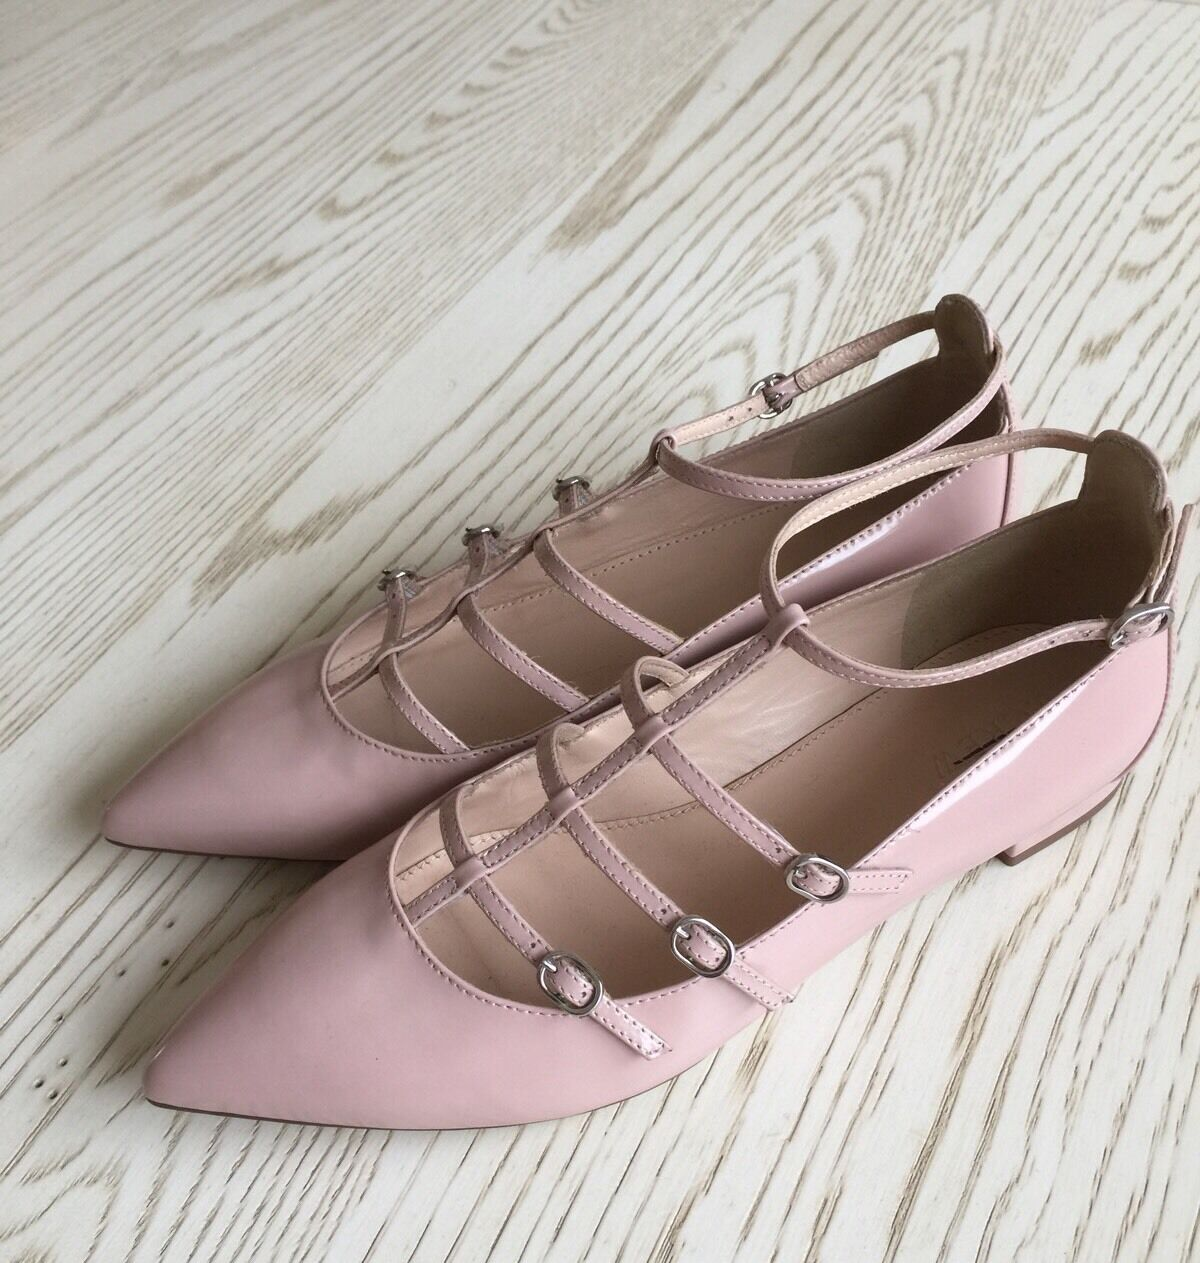 J CREW GLOSSY $168 CAGED FLATS IN GLOSSY CREW LEATHER 7.5 pale bloom Shoes f5530 9f165f